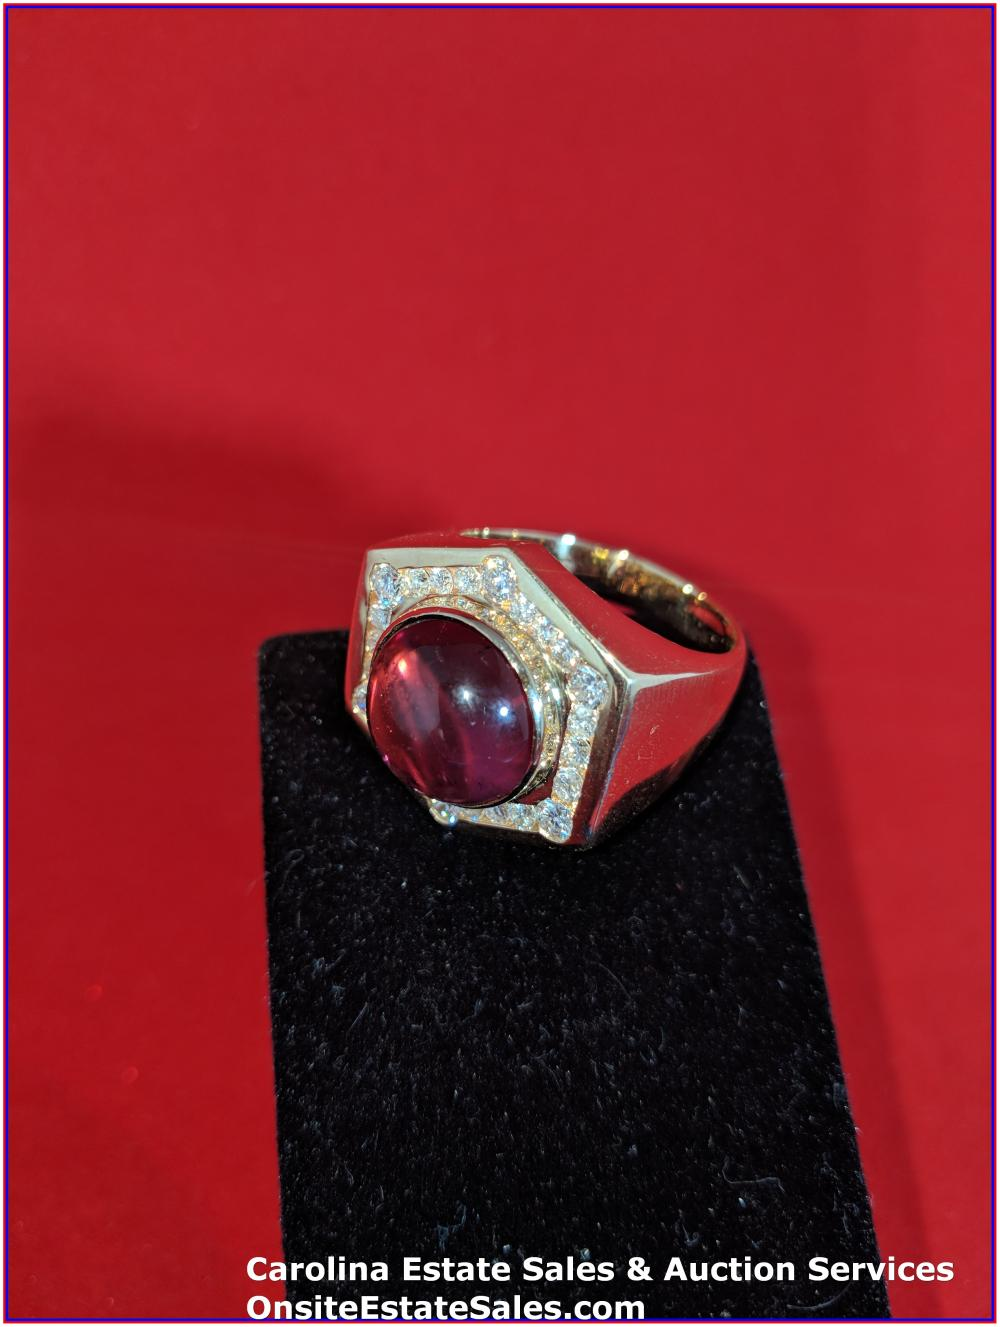 14K Gem Ring Gold 16 Grams Total Weight; 10 ct Pink Sapphire Center Stone